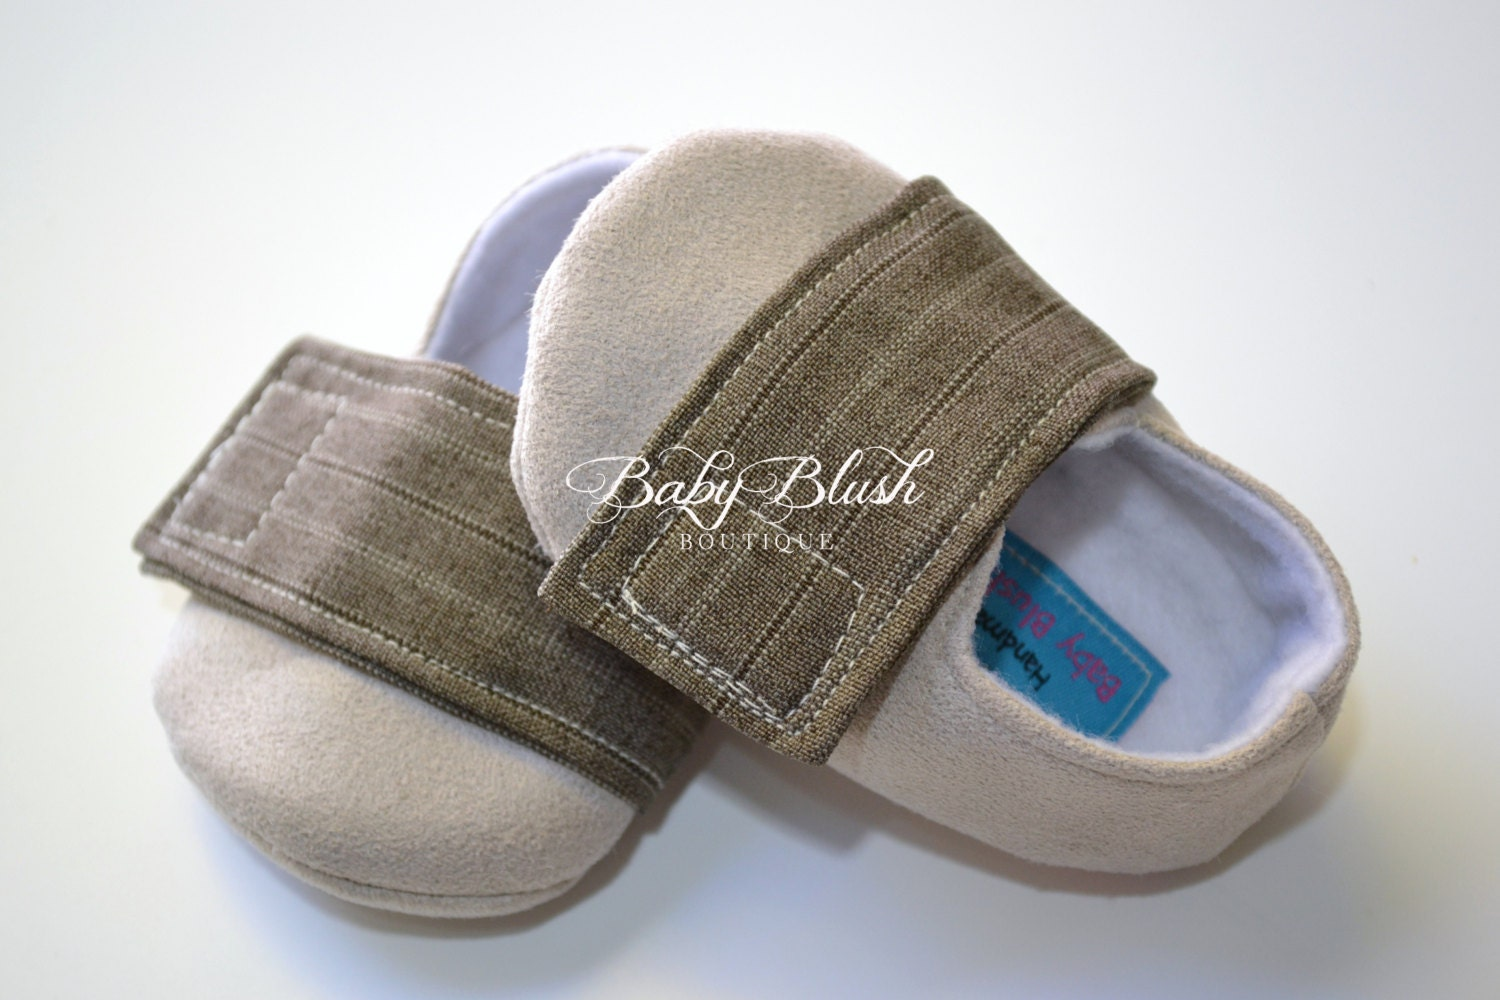 Baby Shoes Little feet deserve big style. Whether you want to dress your baby for a formal occasion or find the right shoes to pair with casual footwear for a playdate, shopping for your baby is super fun with our selection of baby shoes.